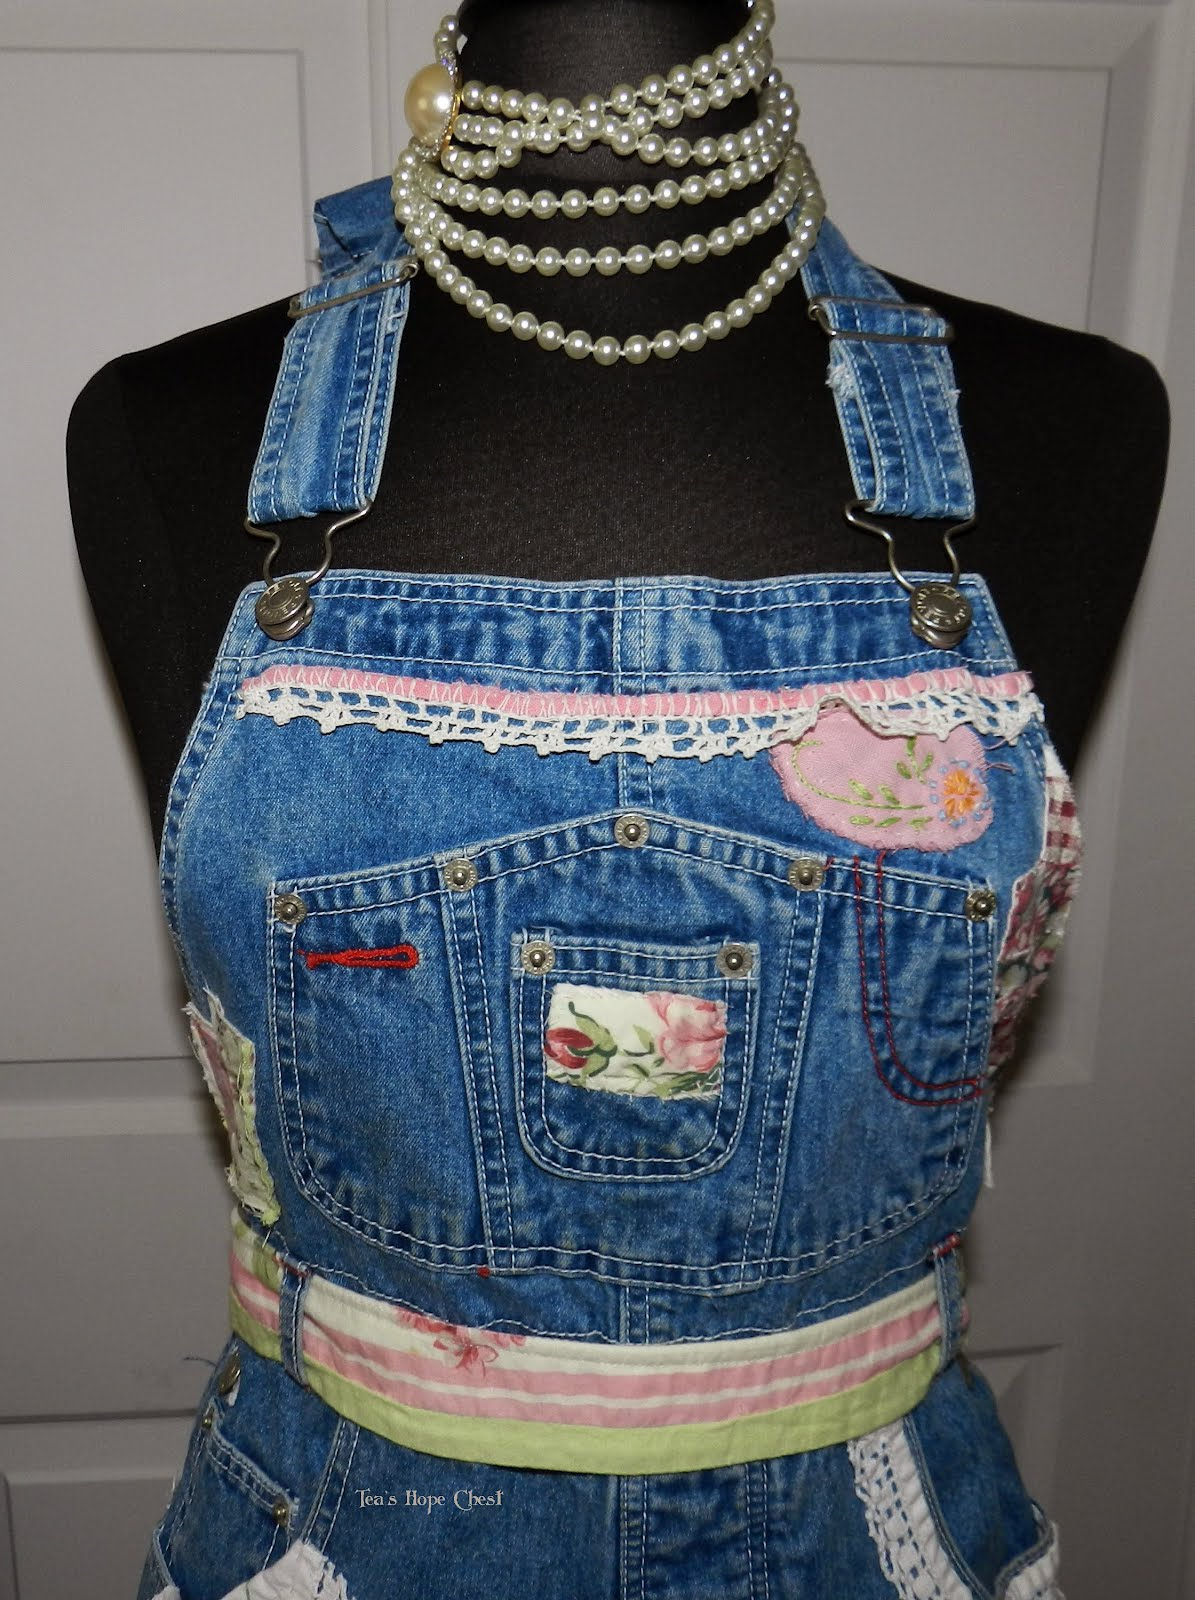 Blue apron how to recycle - Recycled Bib Blue Jeans Craft Apron